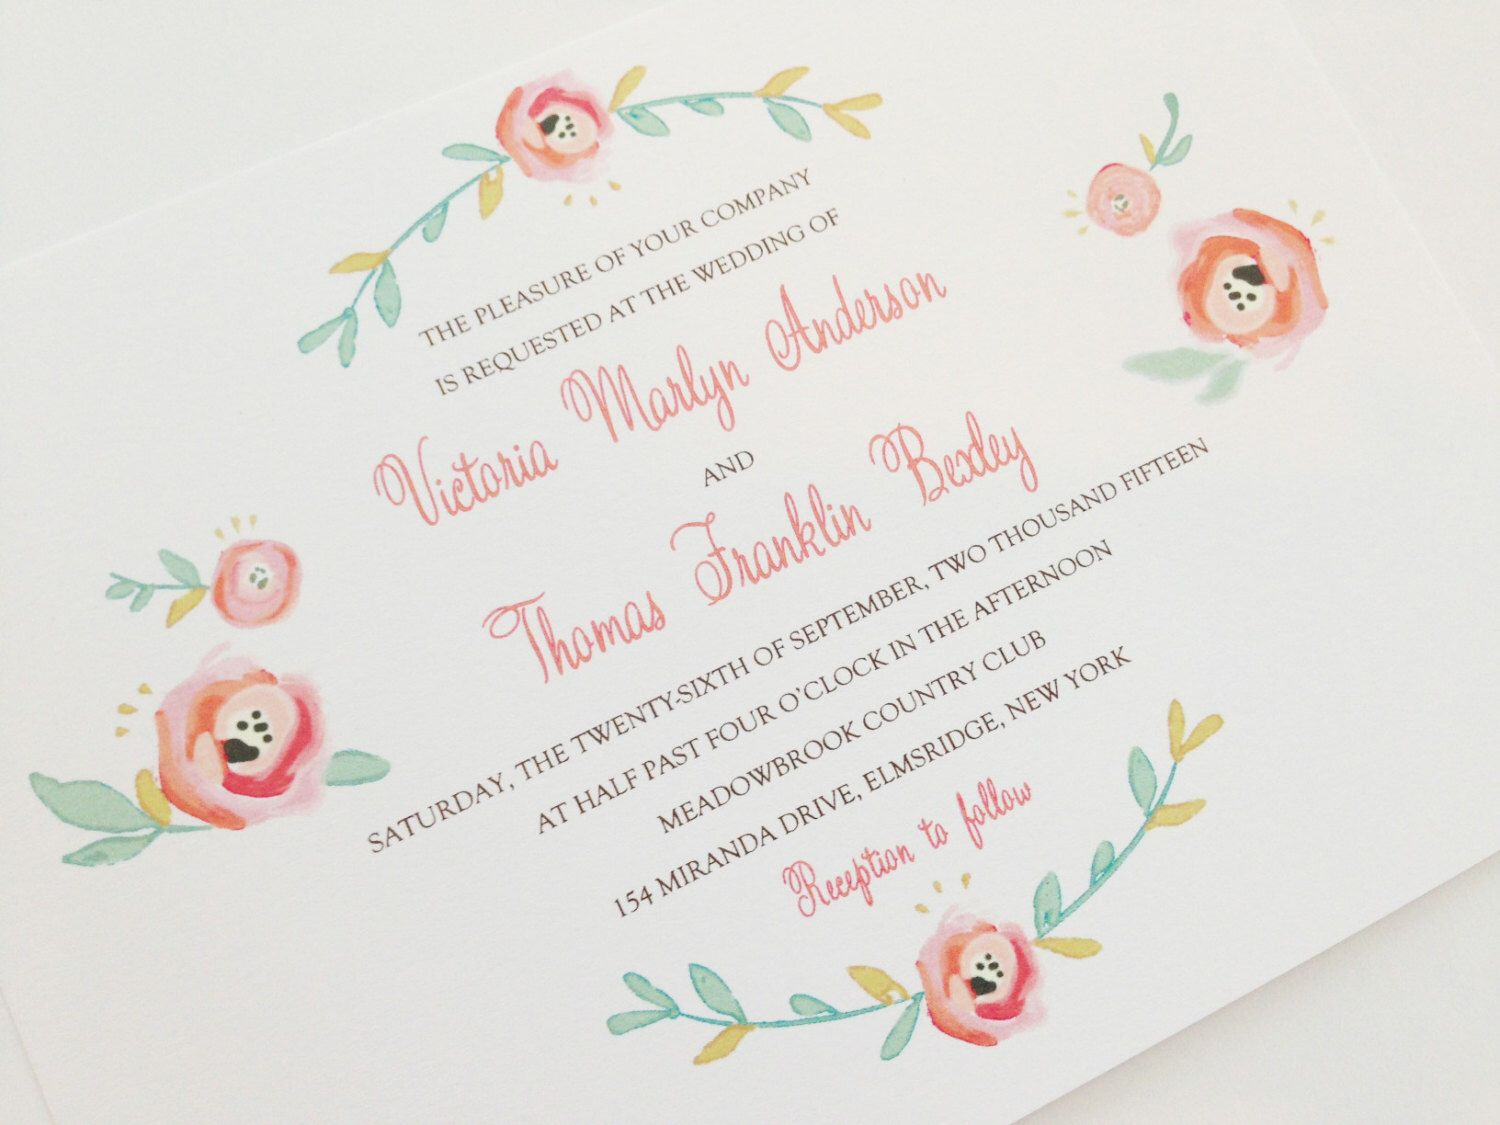 Blush Wedding Invitations - Charming, Soft Floral Theme - Watercolor ...